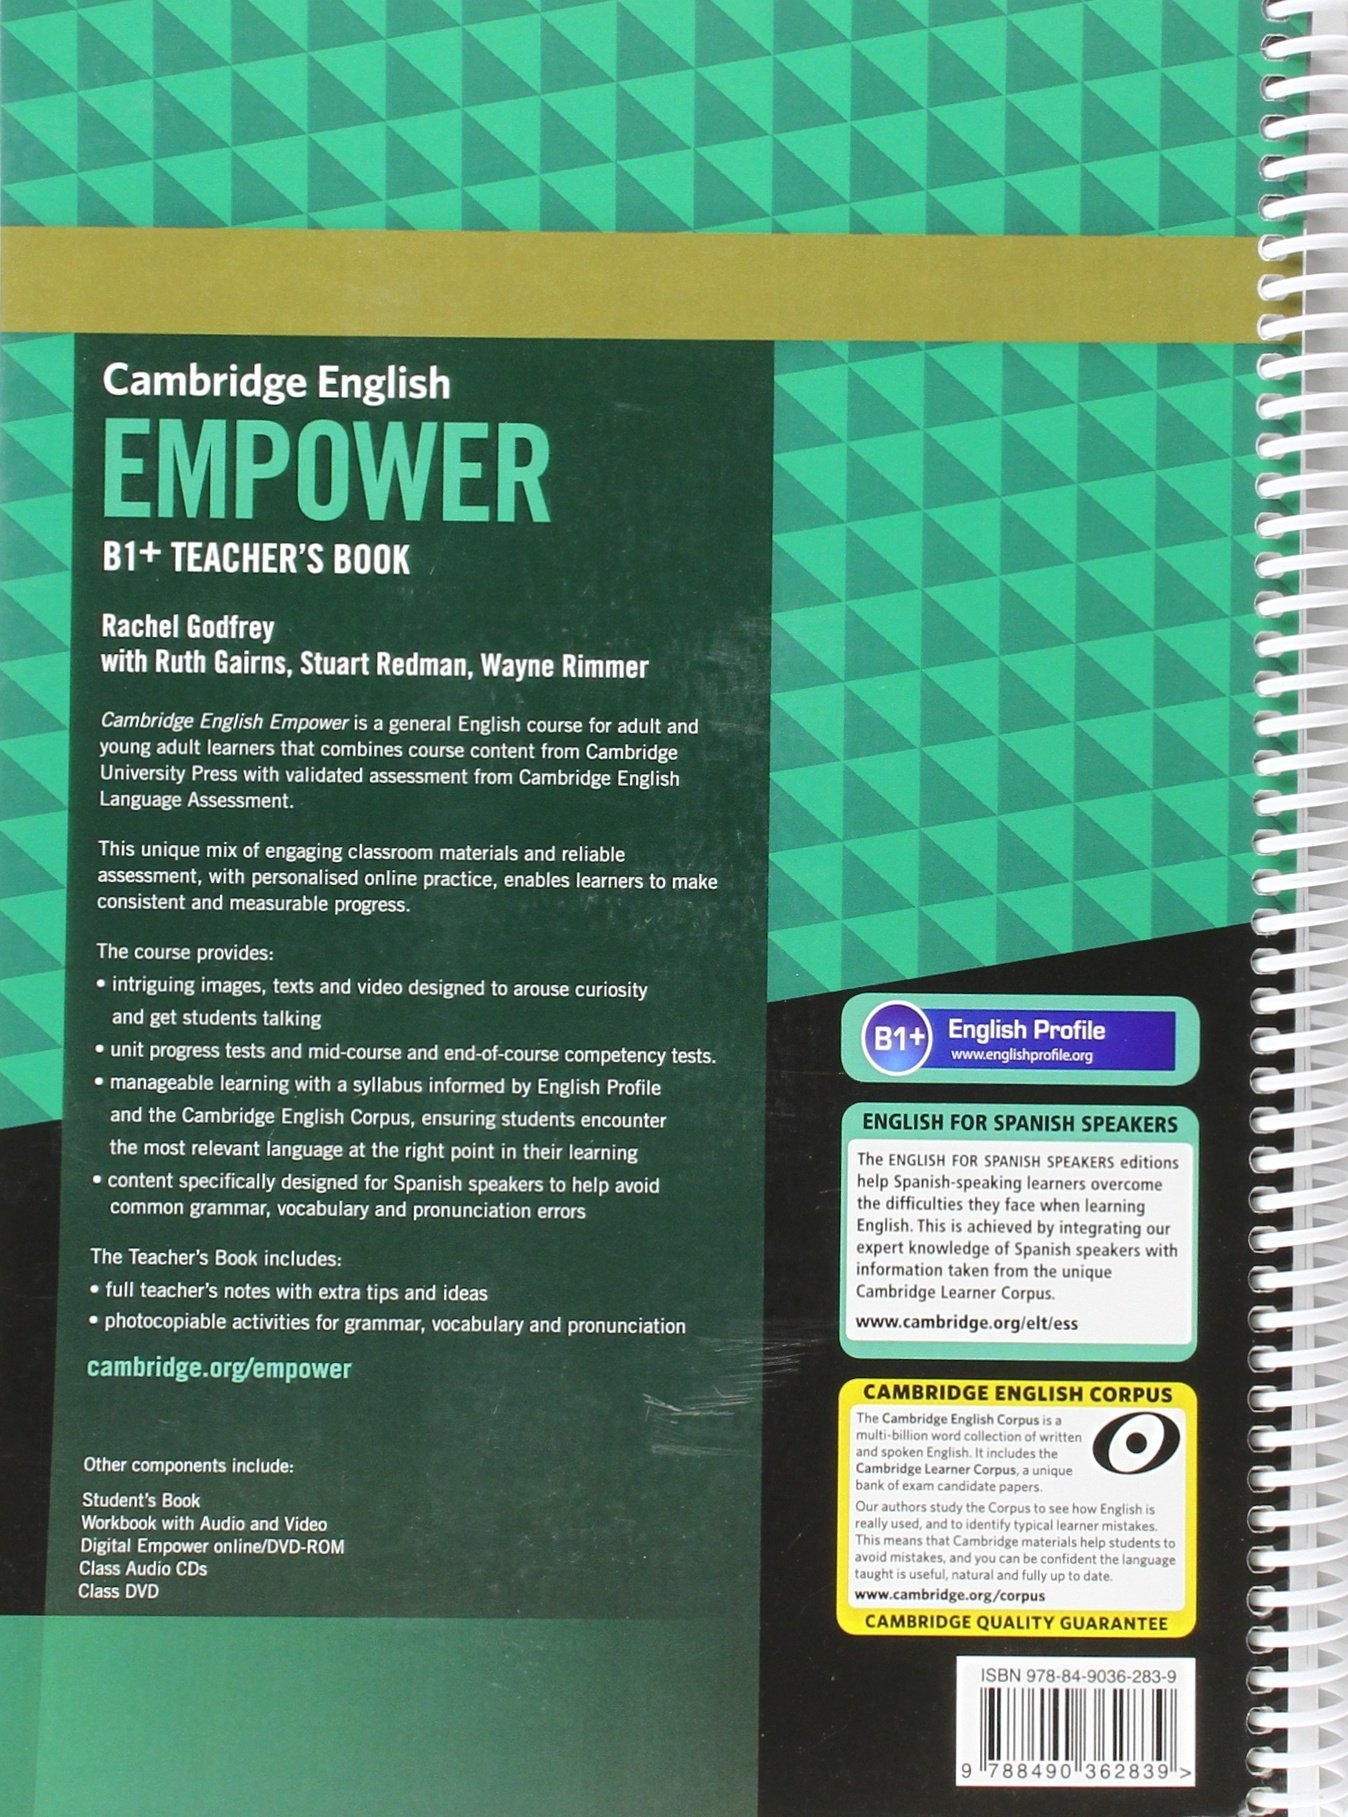 Cambridge English Empower for Spanish Speakers B1+ Teachers Book: Amazon.es: Godfrey, Rachel, Gairns, Ruth, Redman, Stuart, Rimmer, Wayne: Libros en idiomas extranjeros